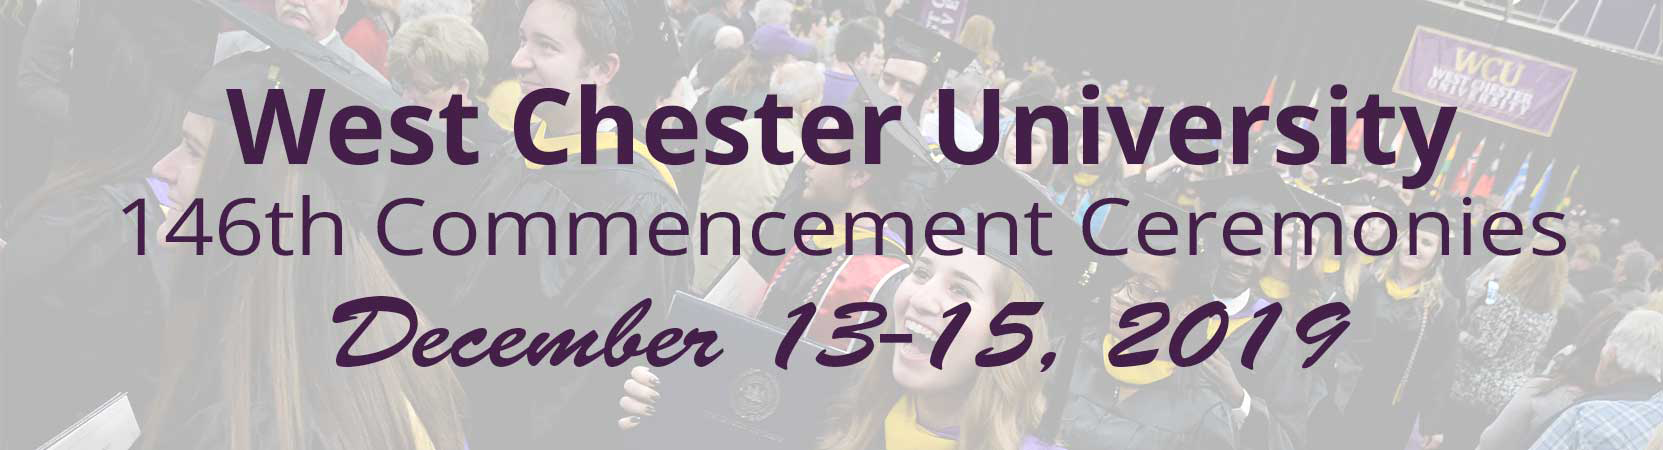 West Chester University - 146th Commencement Ceremonies - December 13-15, 2019